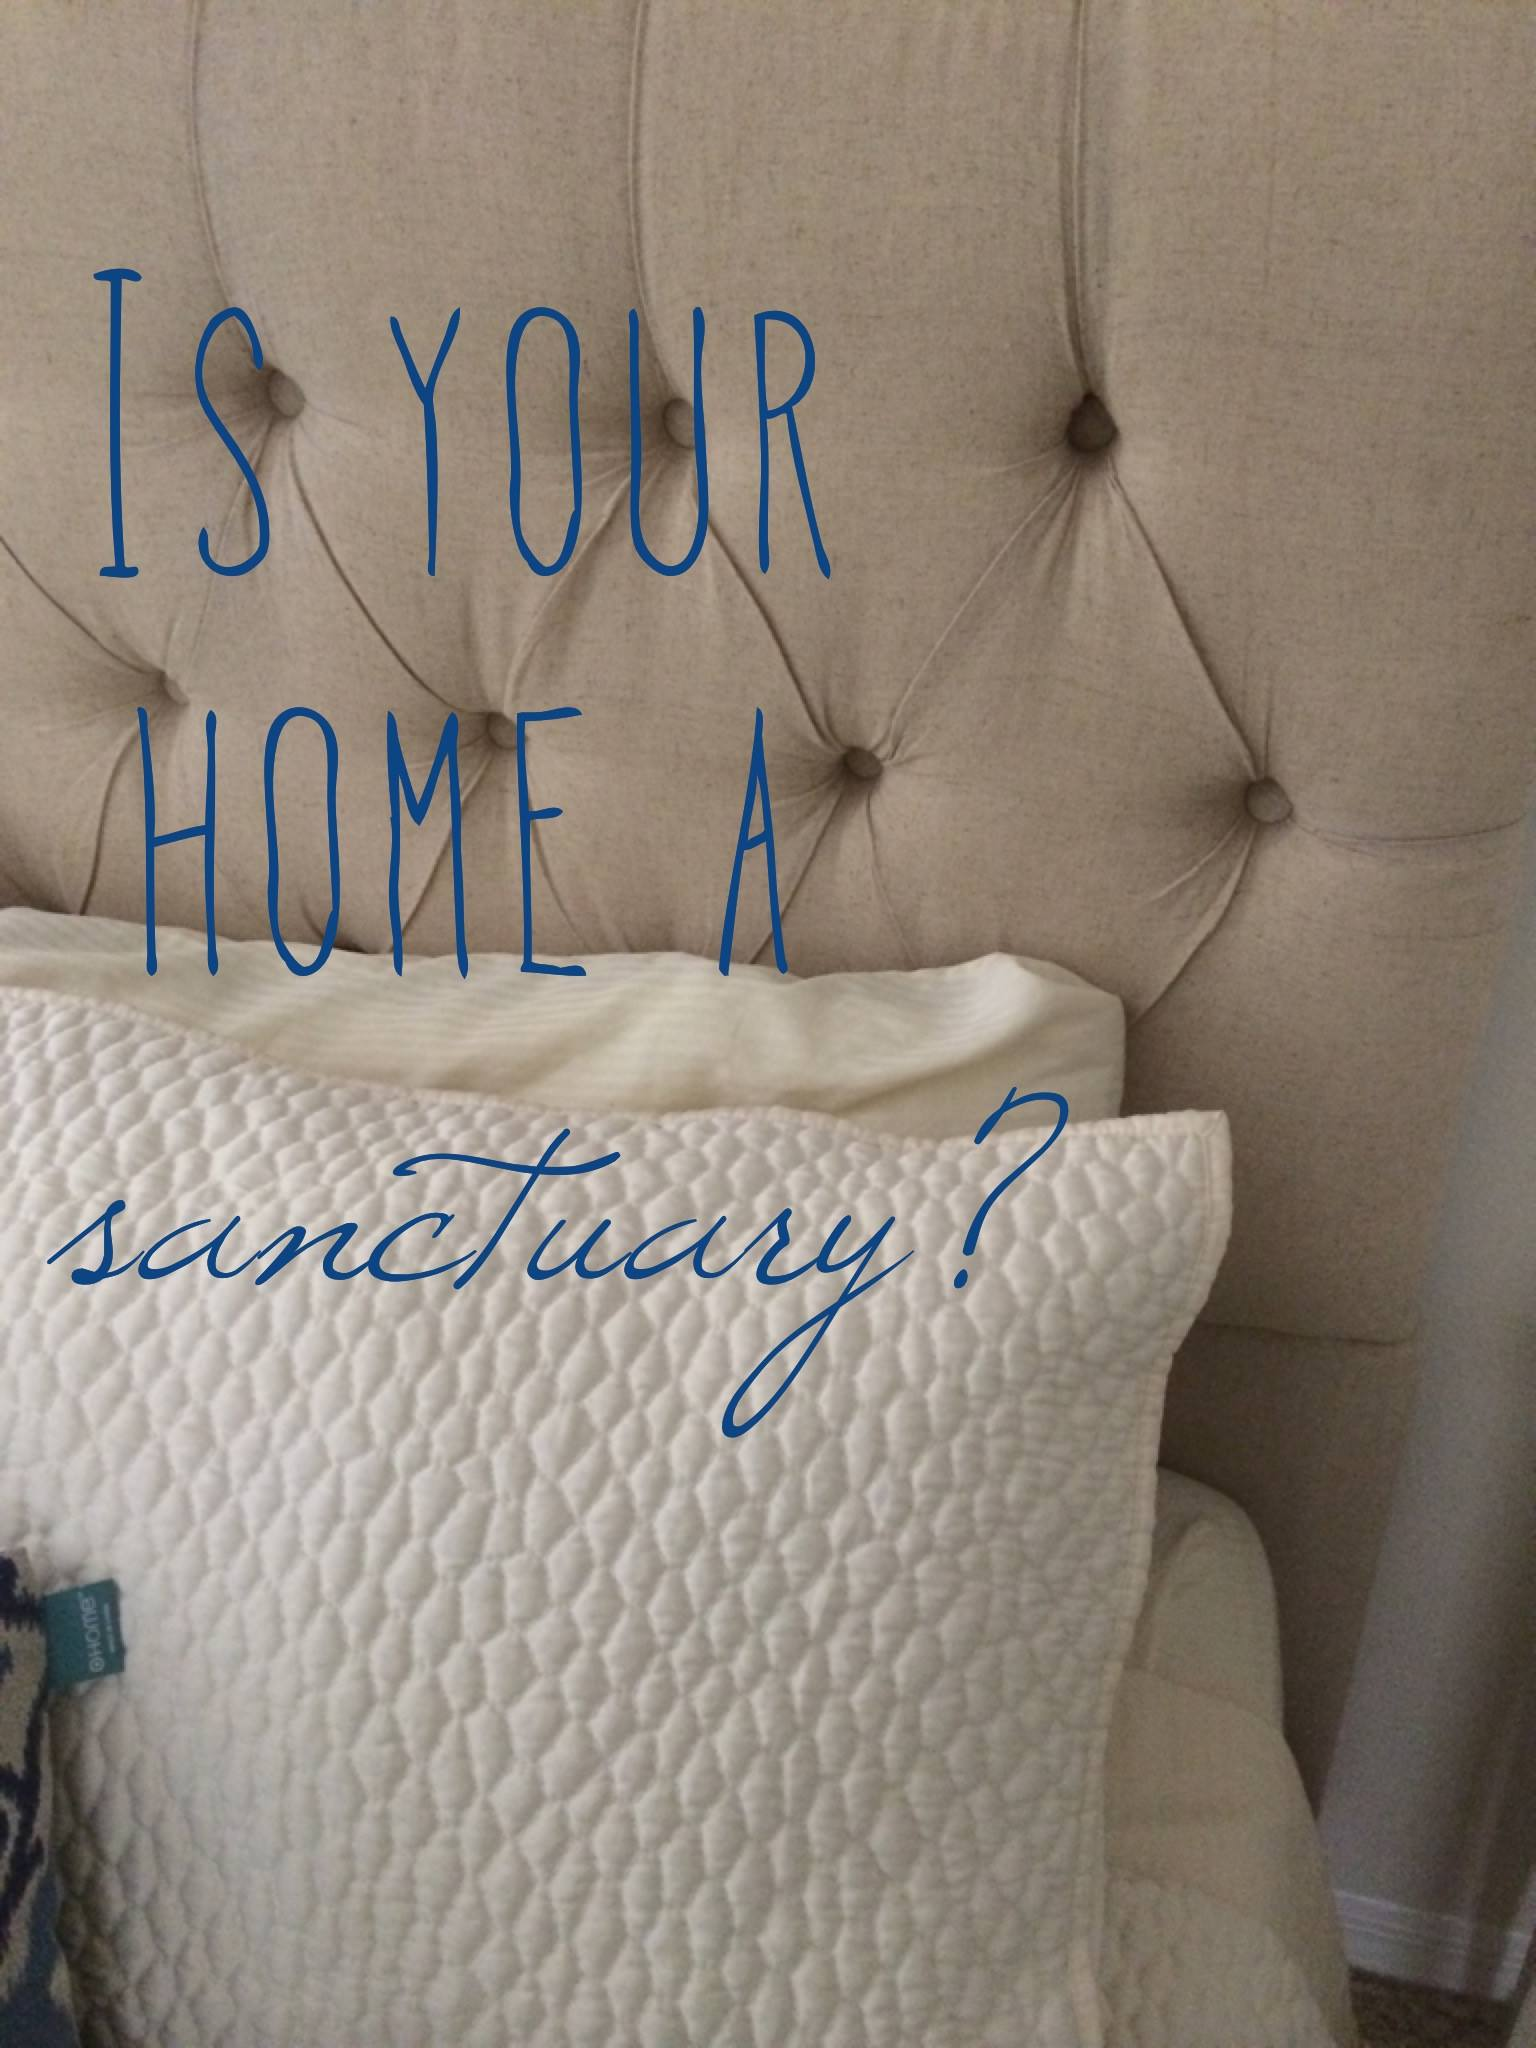 7 Things You Can Do To Make Your Home A Sanctuary - By Dr. Carolle